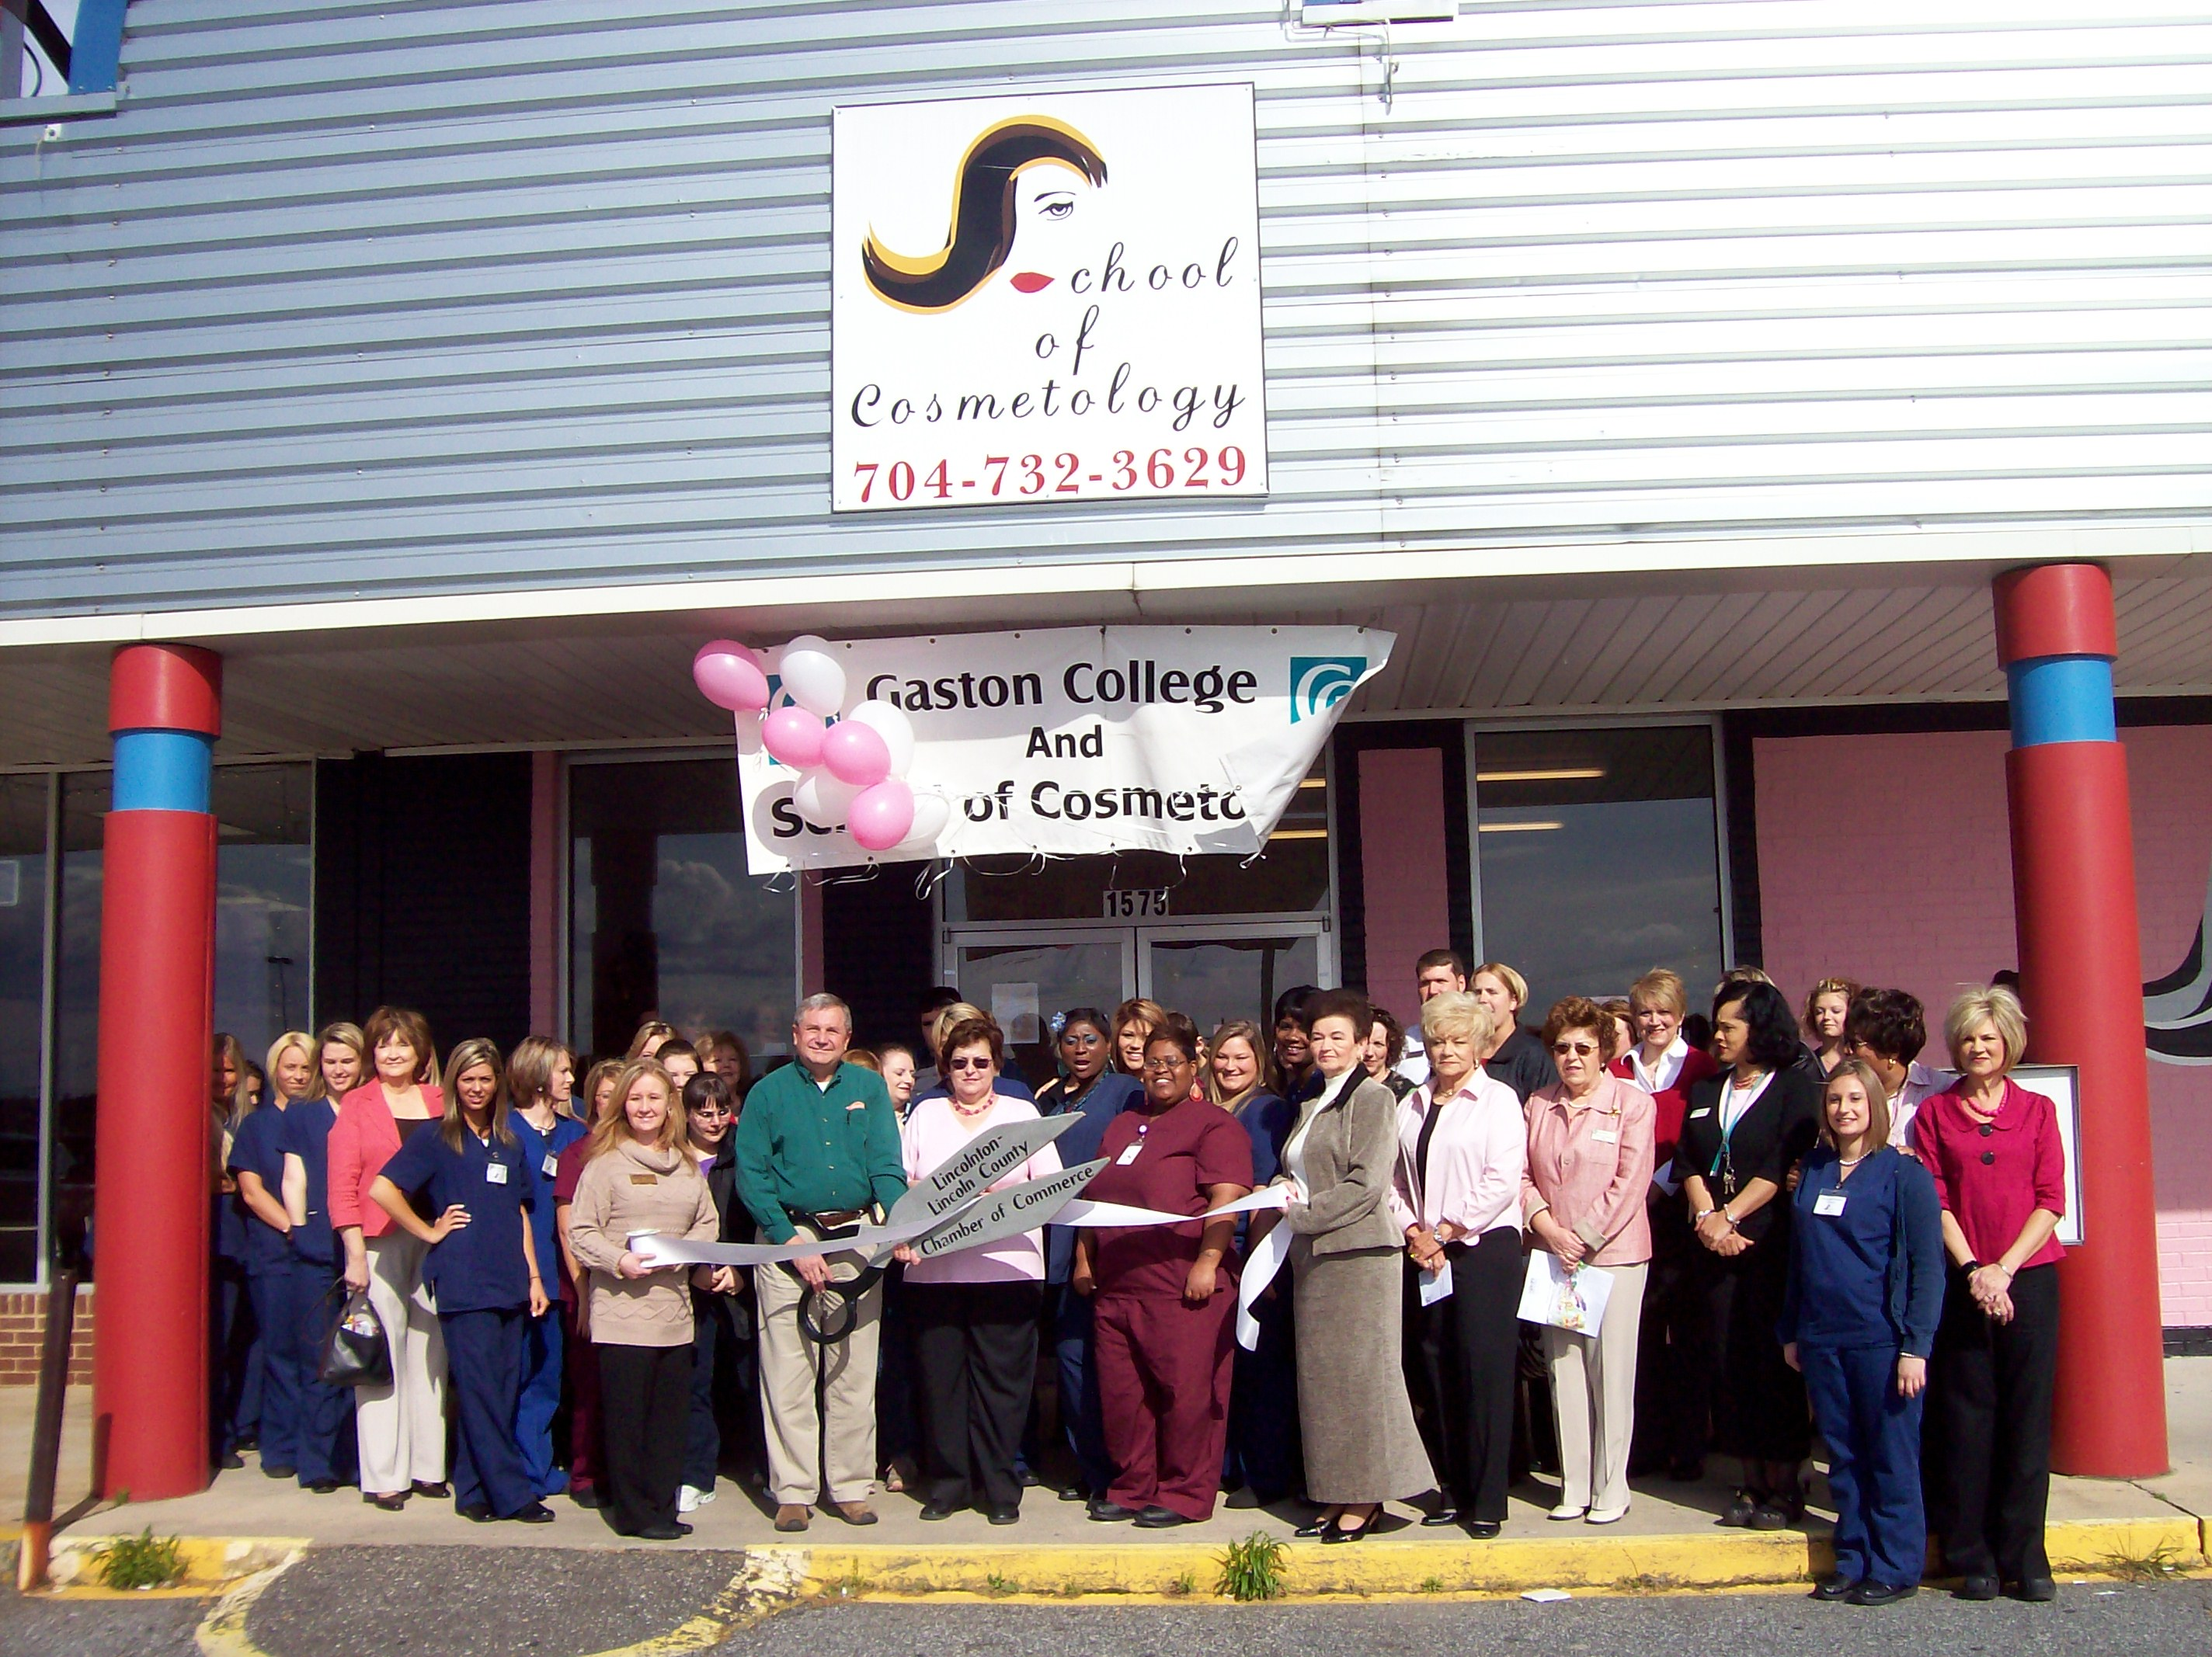 Ribbon cutting at the School of Cosmetology